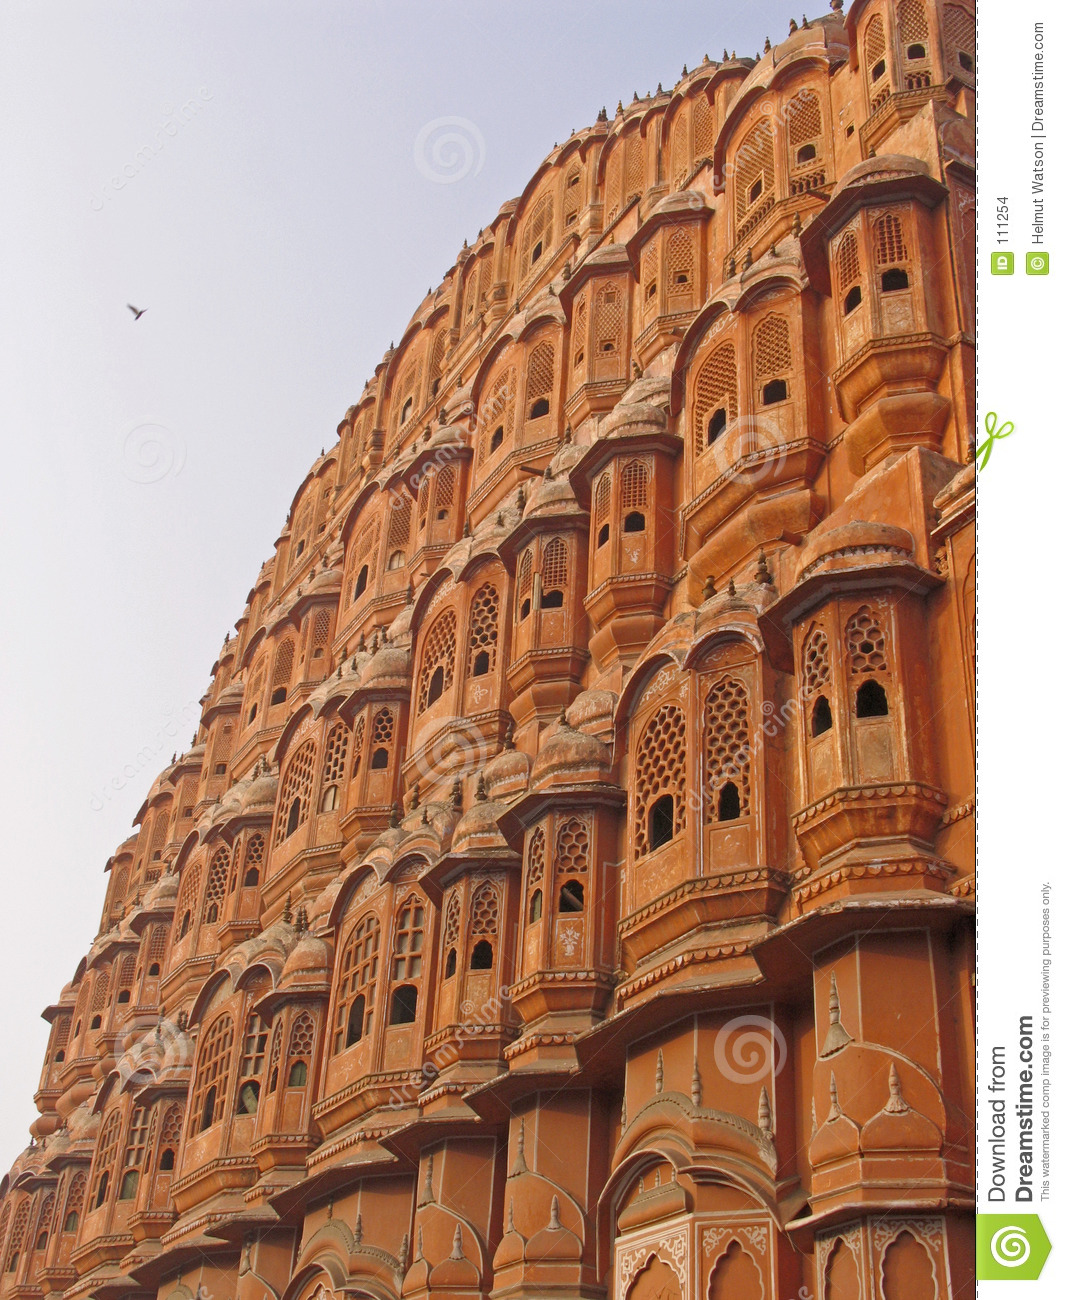 India - Palace of the winds